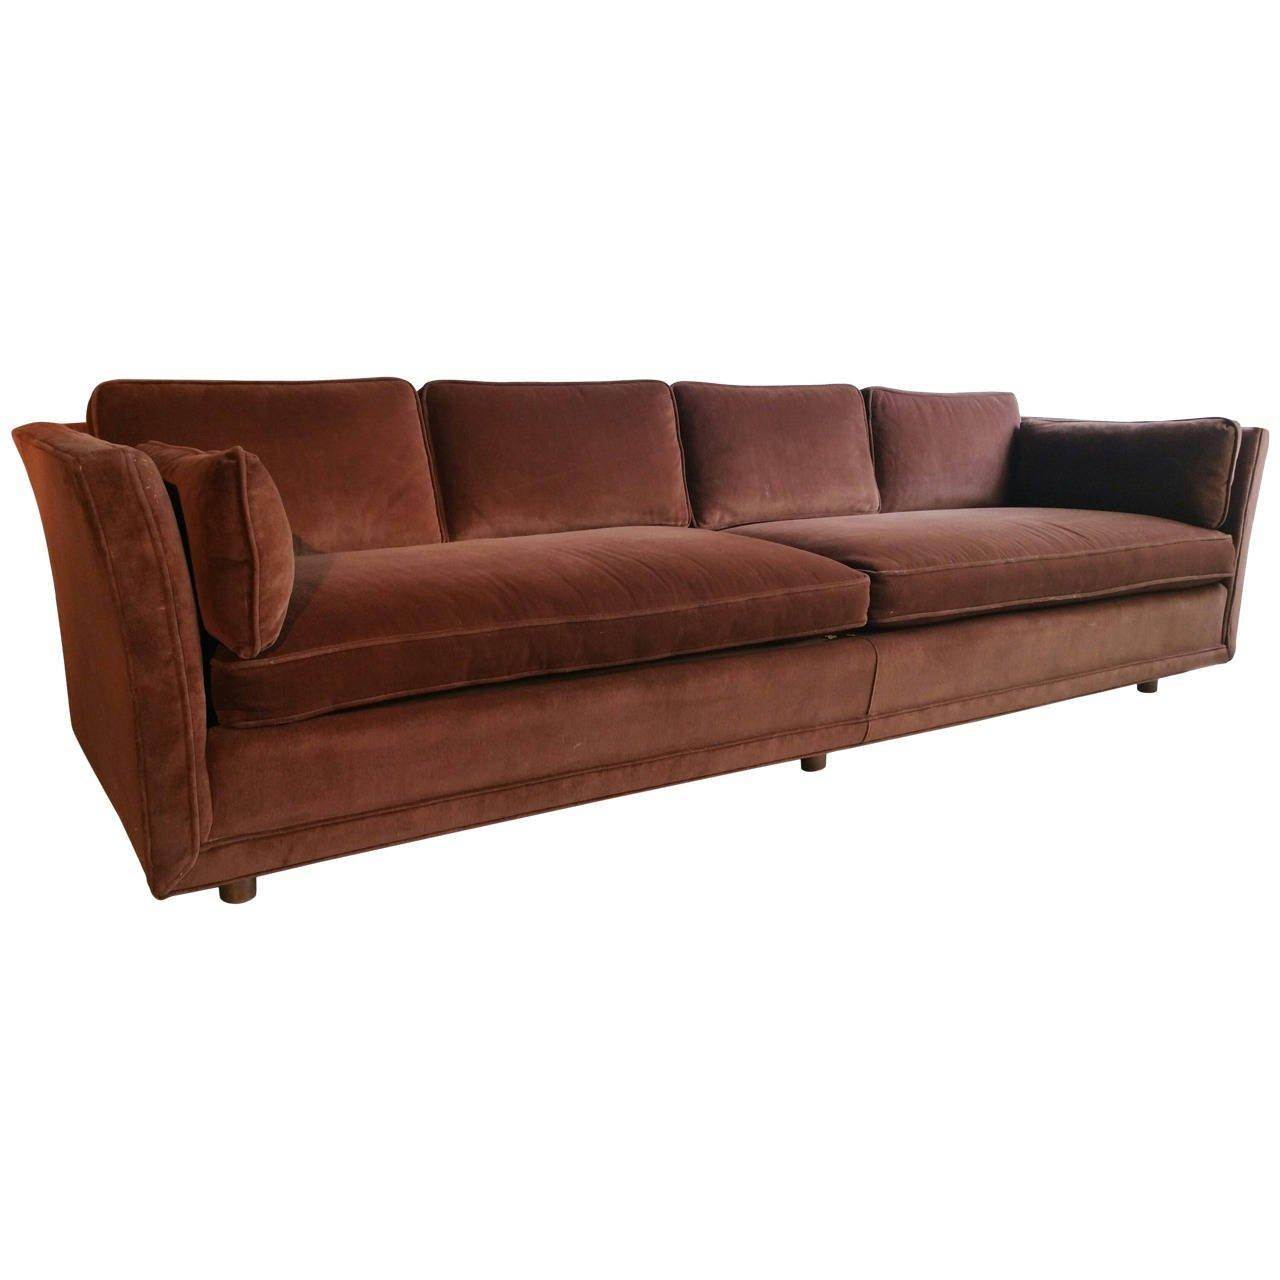 Modernist Four Seater Sofa, Designedharvey Probber At 1Stdibs Pertaining To Four Seater Sofas (Image 16 of 20)